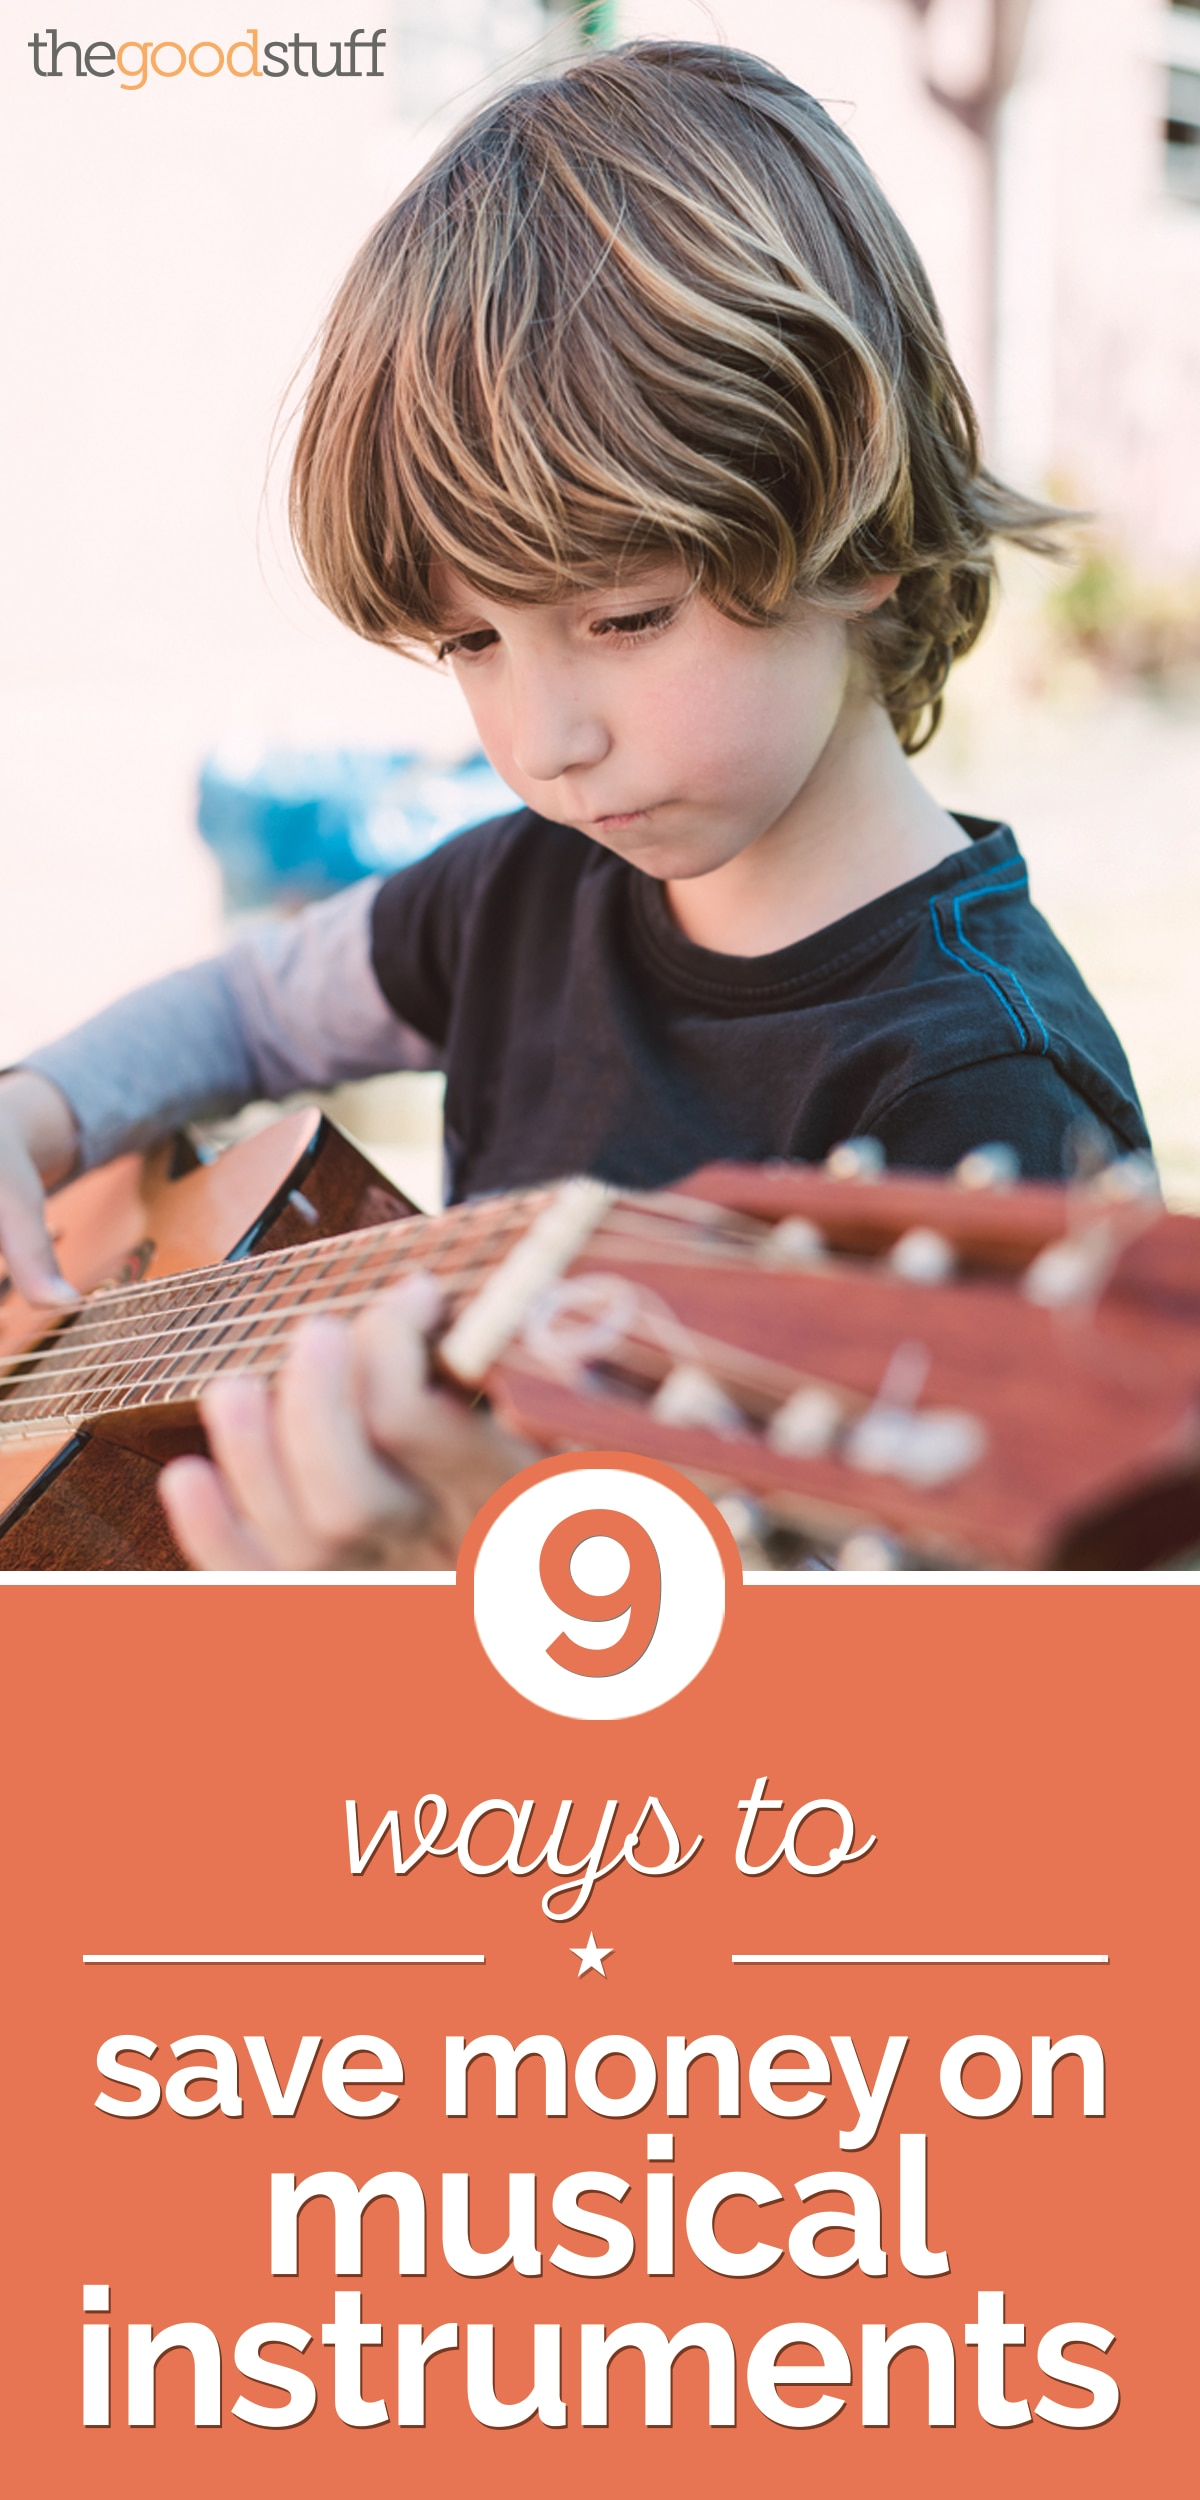 9 Ways to Save Money on Musical Instruments | thegoodstuff